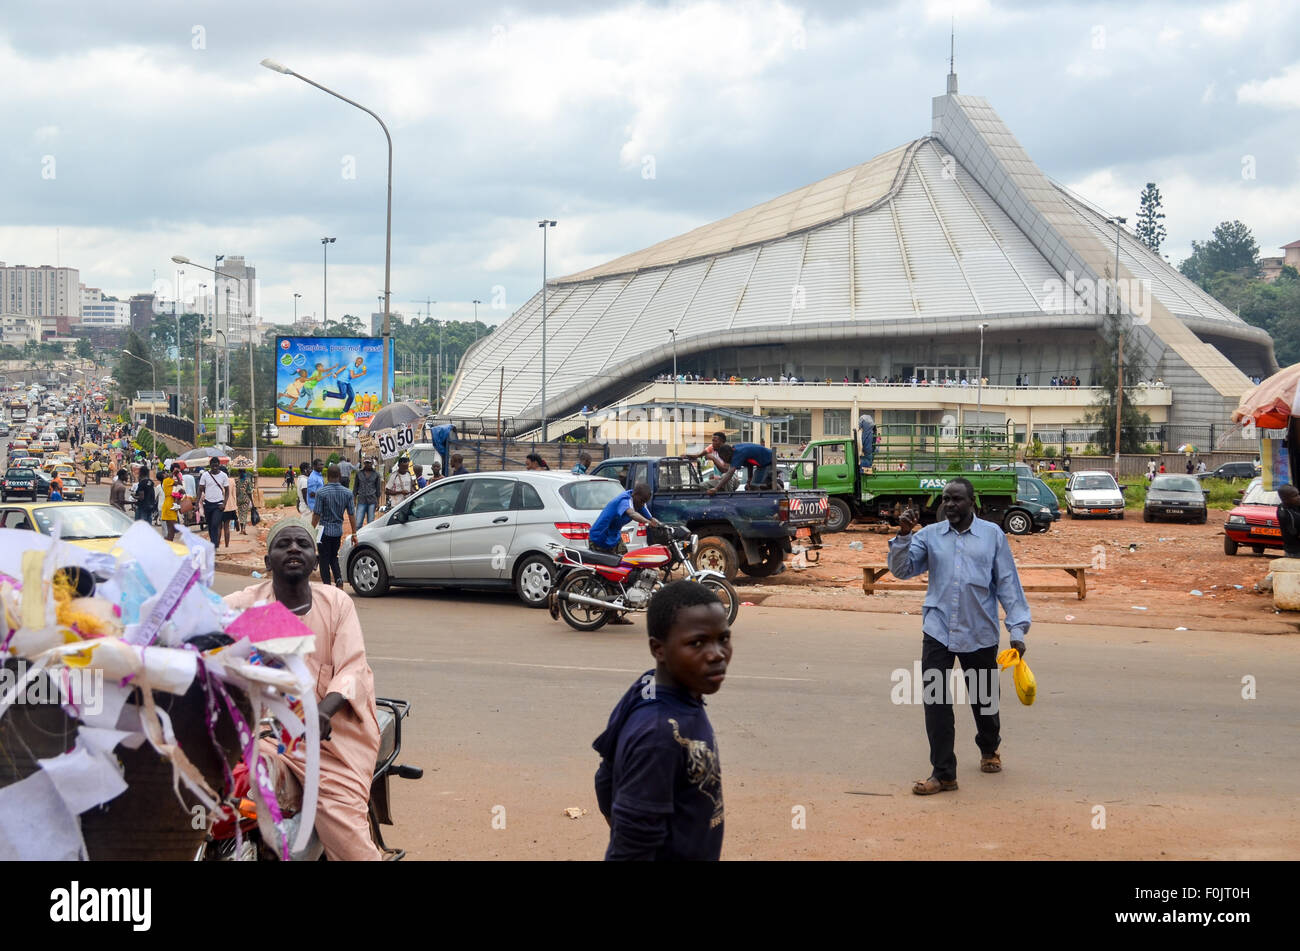 Yaounde is the capital of Cameroon 18